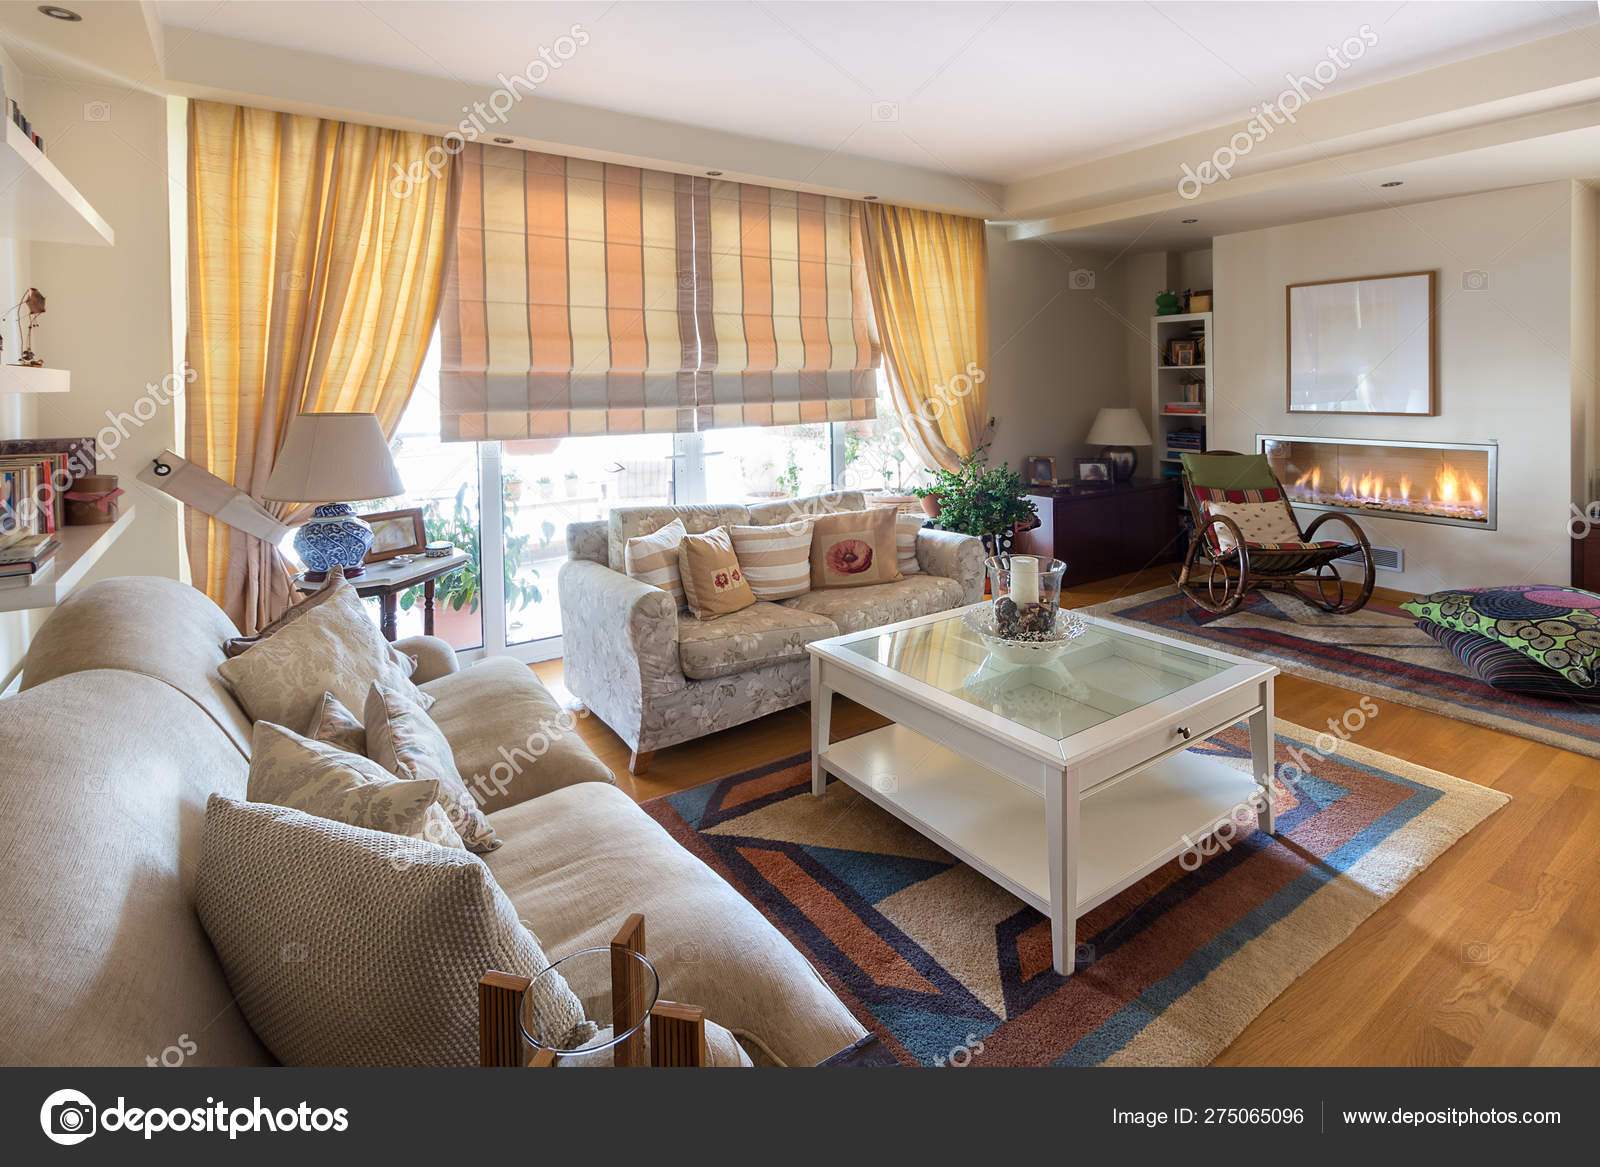 Miraculous Warm Contemporary Style Living Room With Two Sofas On An Oak Dailytribune Chair Design For Home Dailytribuneorg